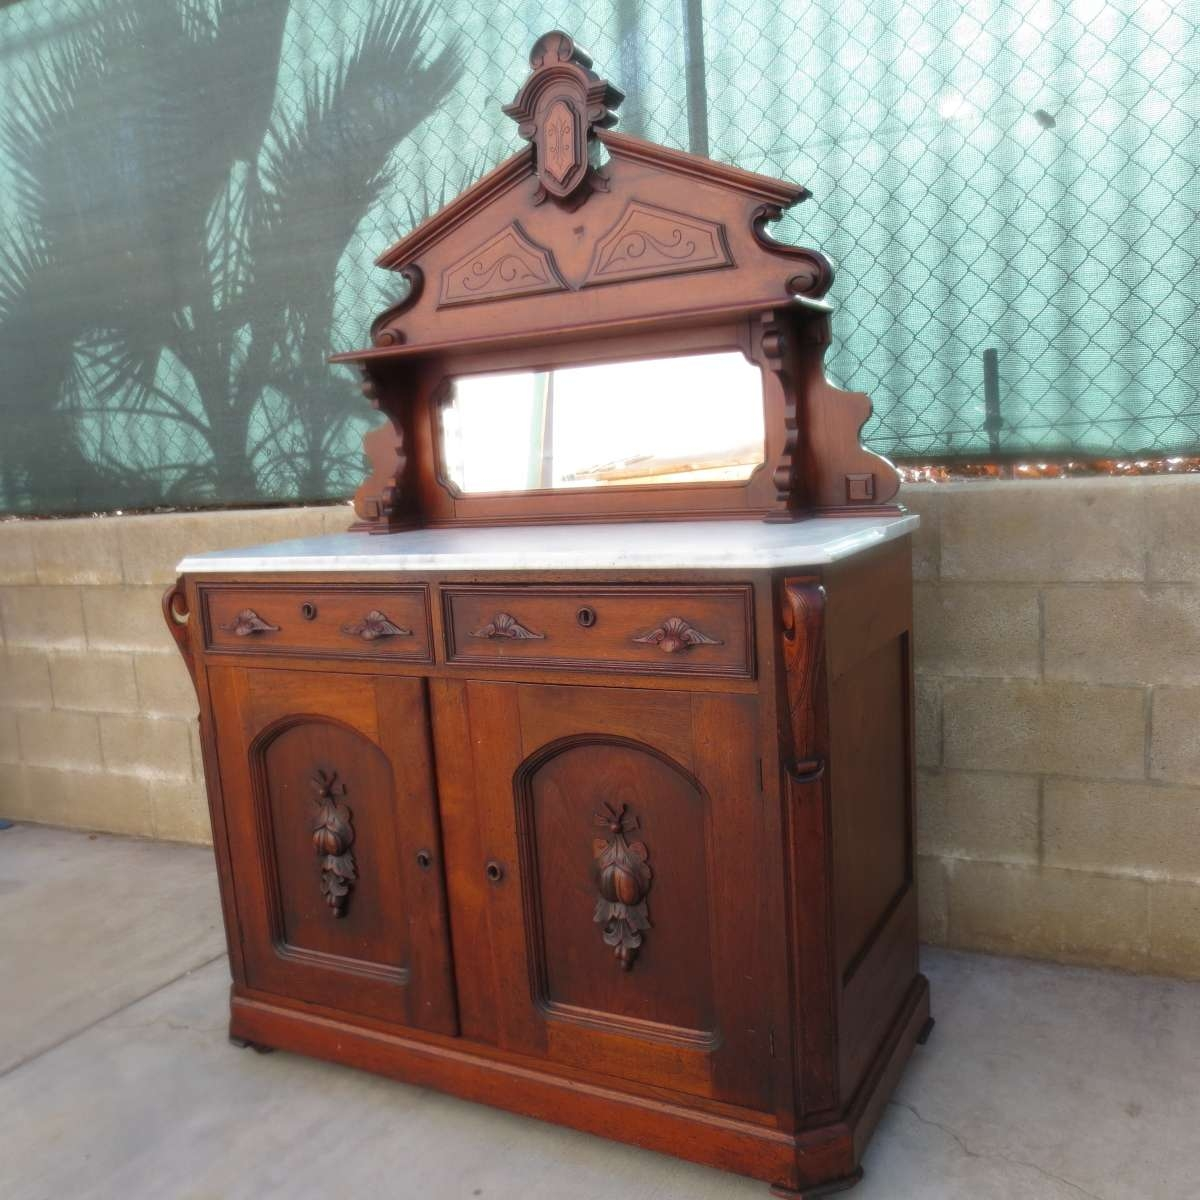 Antique Sideboards And Buffets Images — All Furniture : Antique Within Antique Sideboards And Buffets (View 7 of 20)